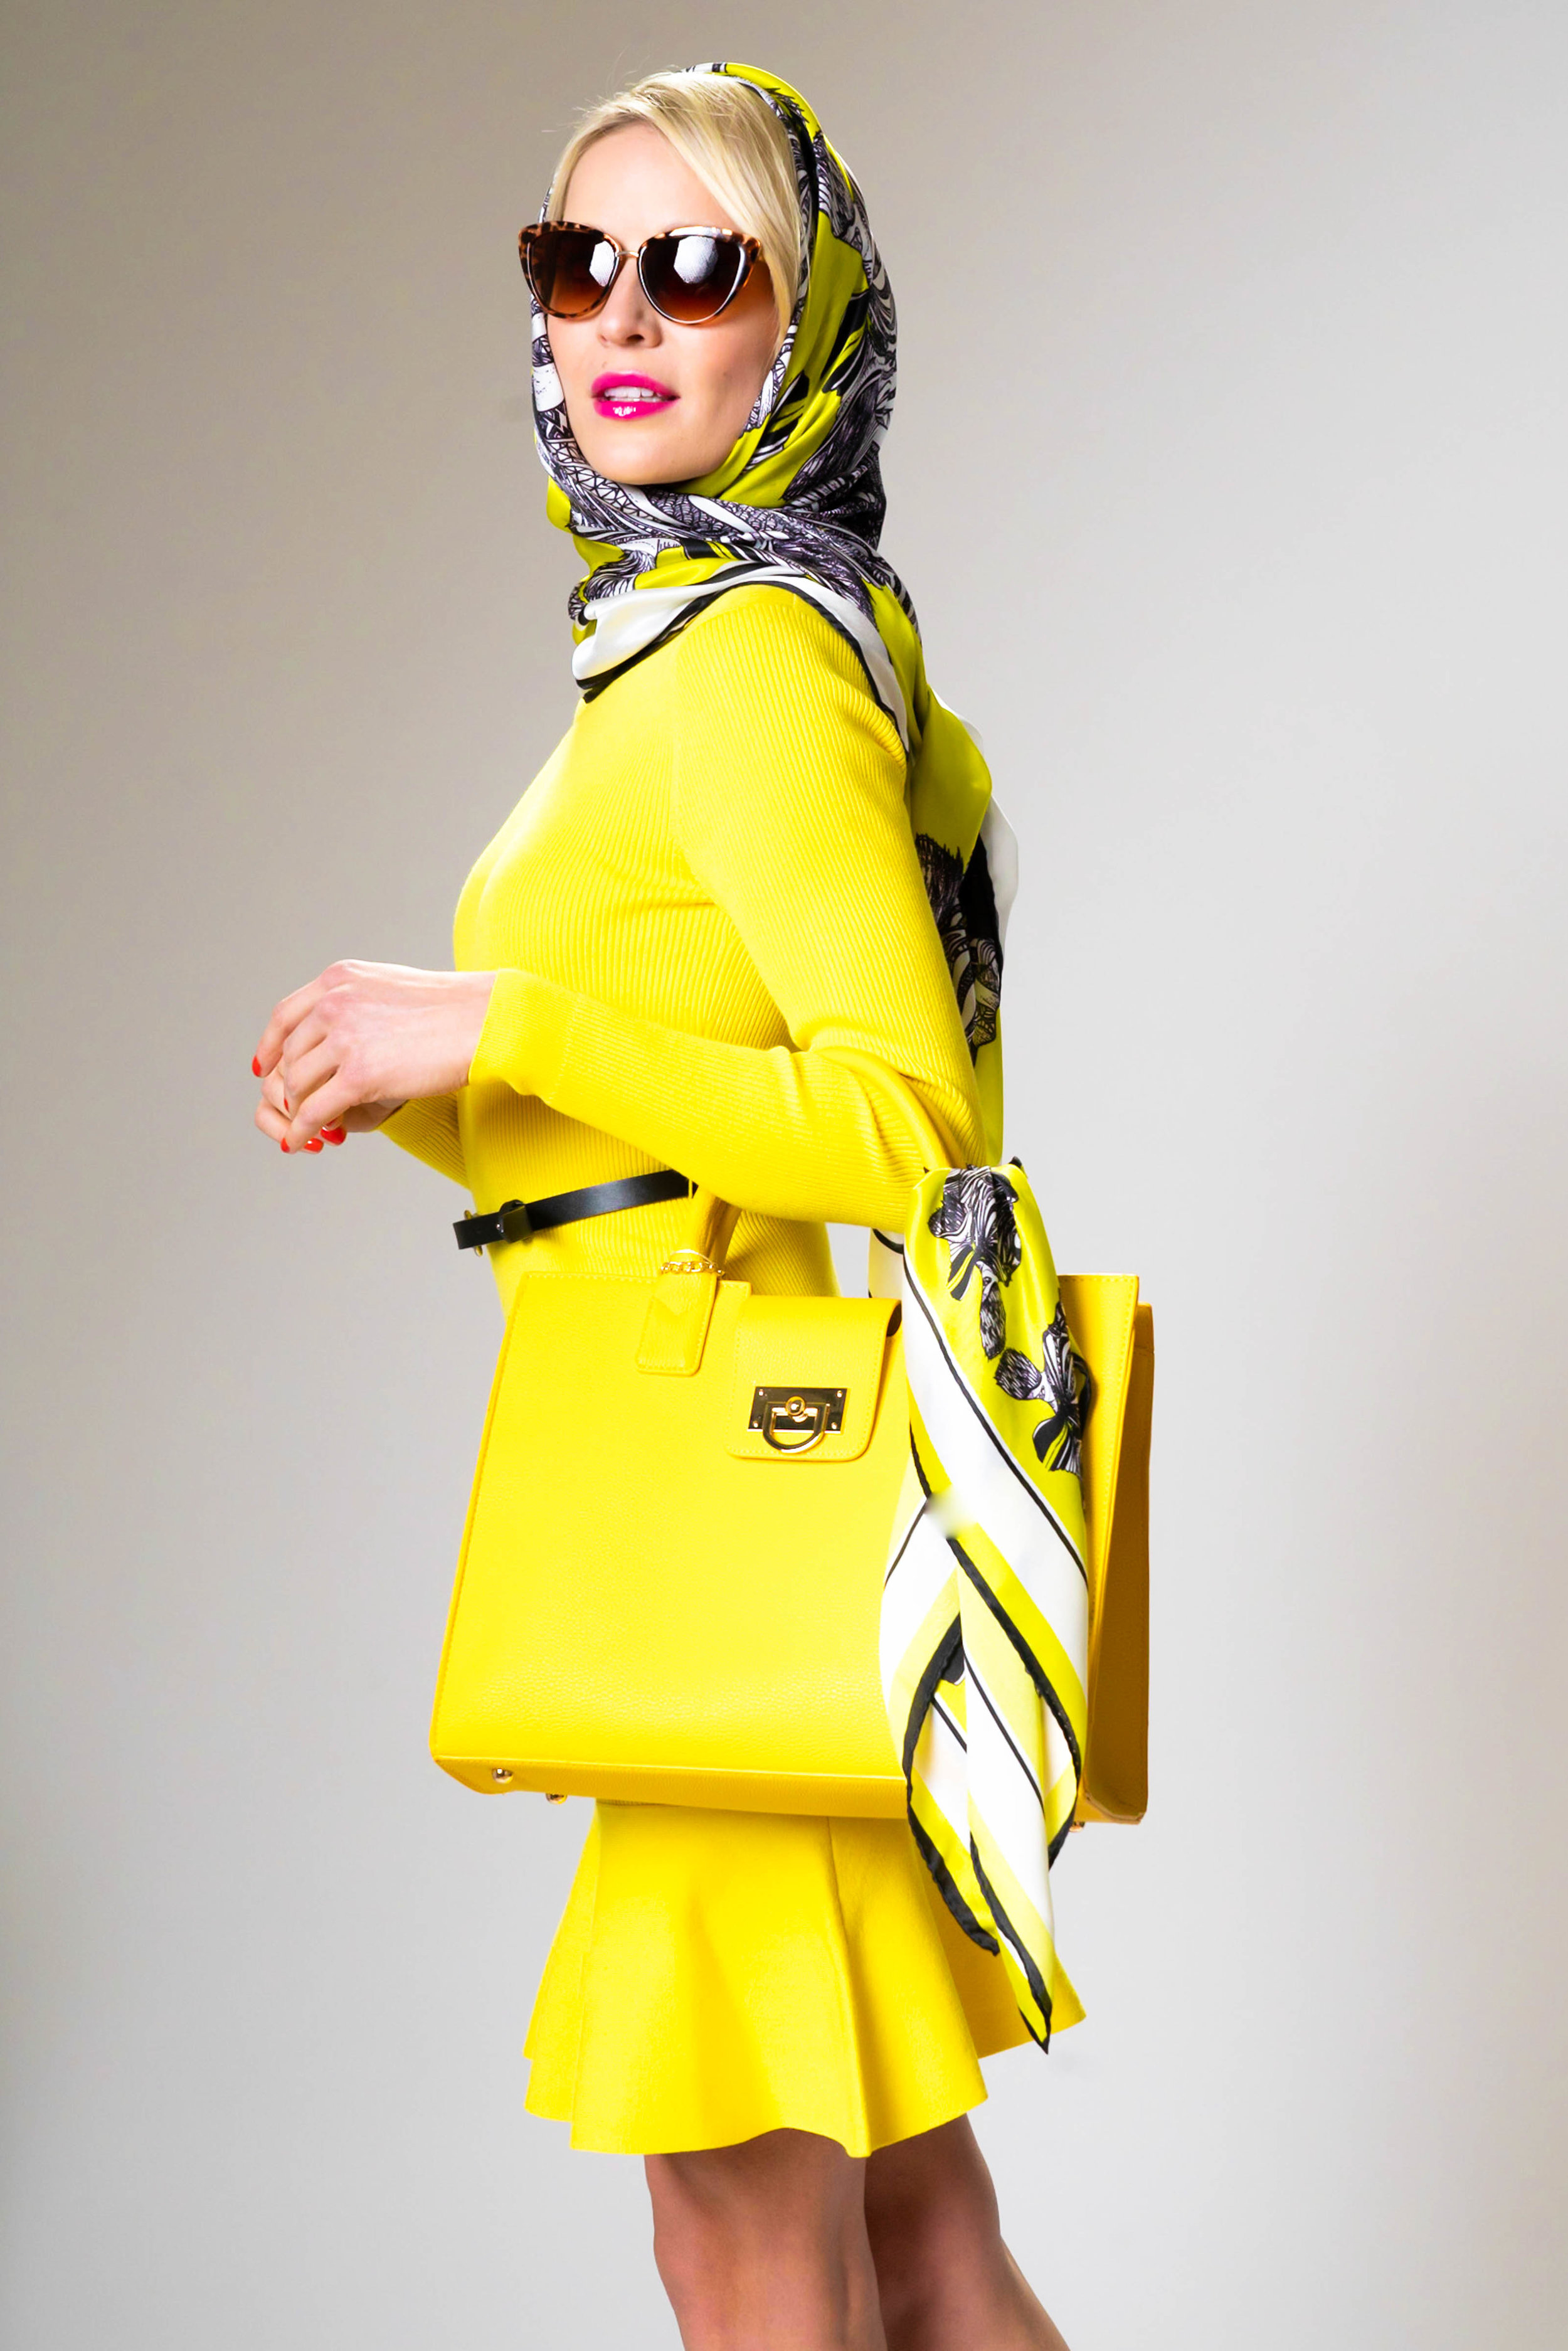 Wear yellow and #behappy - Let the colour wrap you in sunshine